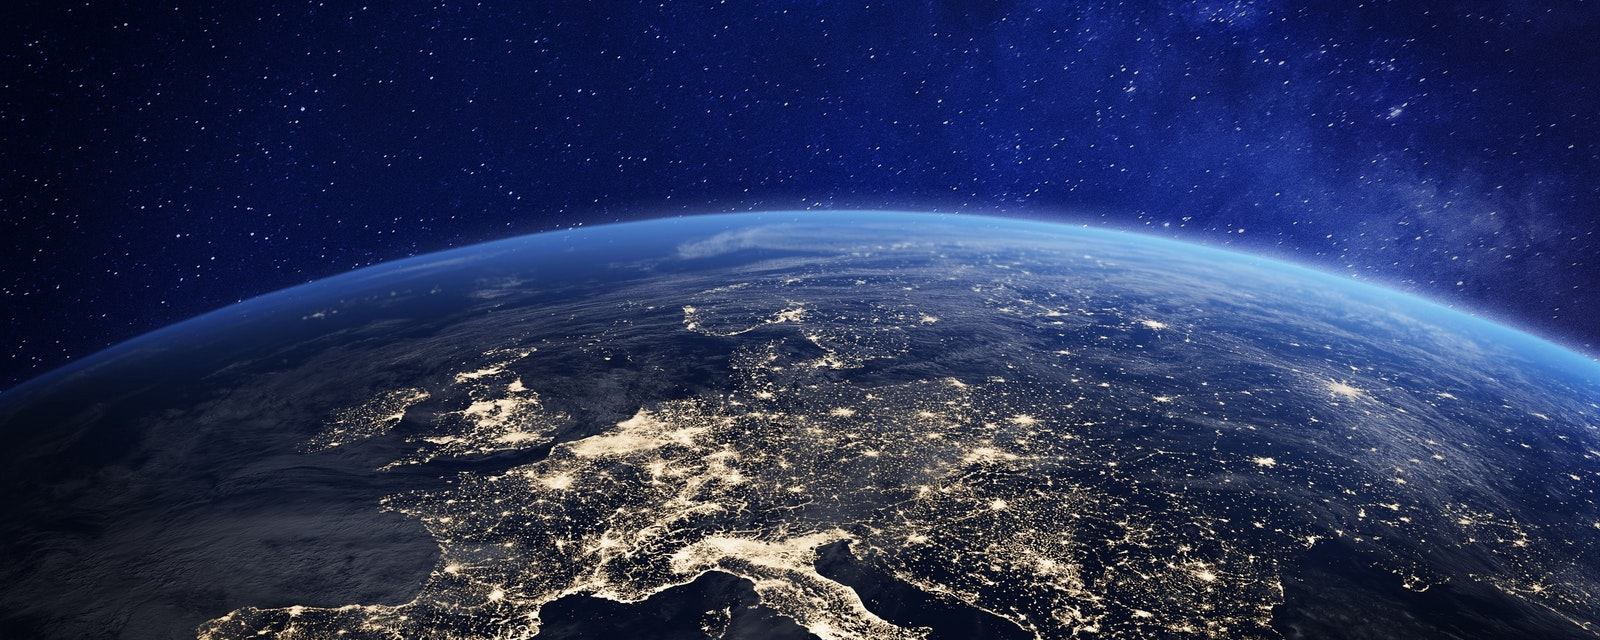 Europe,At,Night,Viewed,From,Space,With,City,Lights,Showing